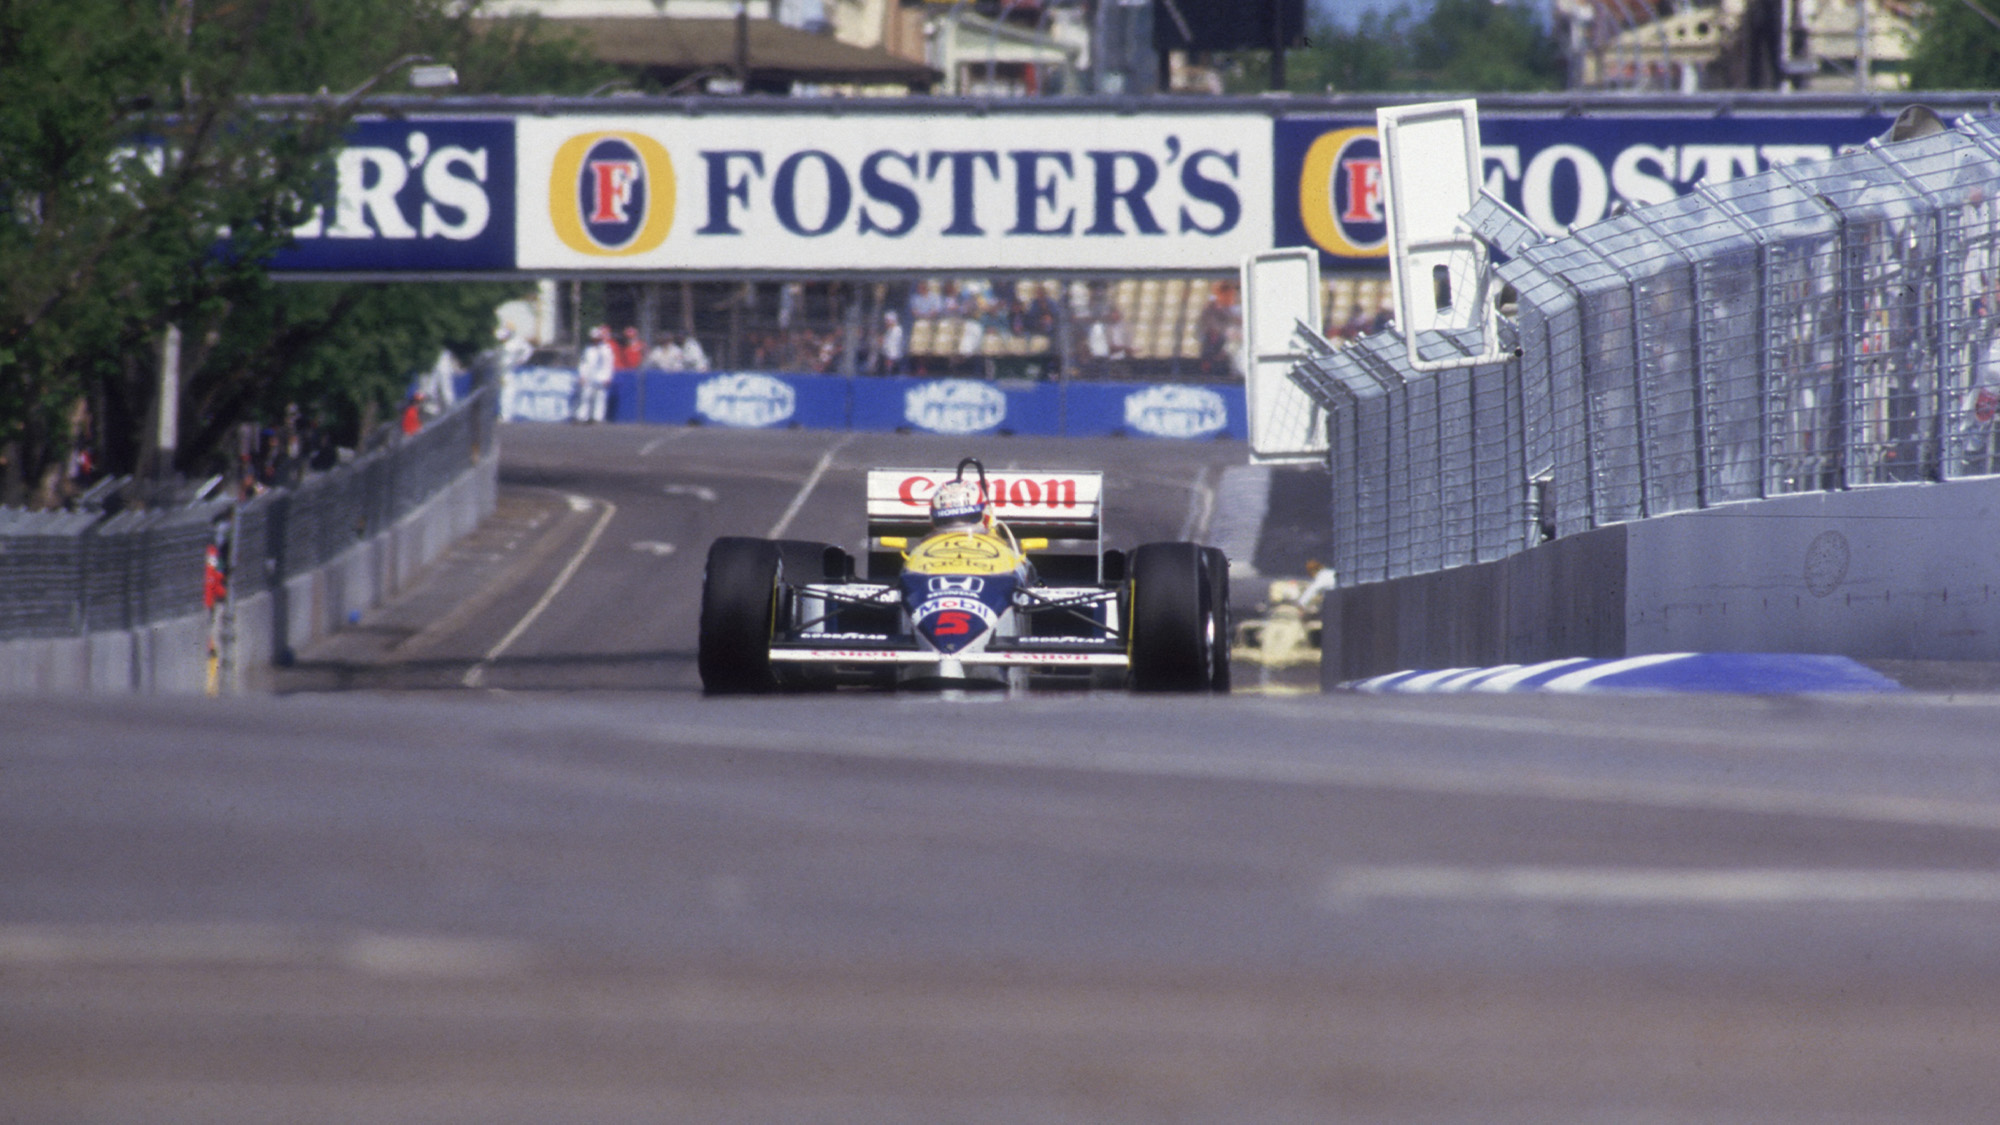 Nigel Mansell's Williams during the 1986 F1 Australian Grand Prix in Adelaide